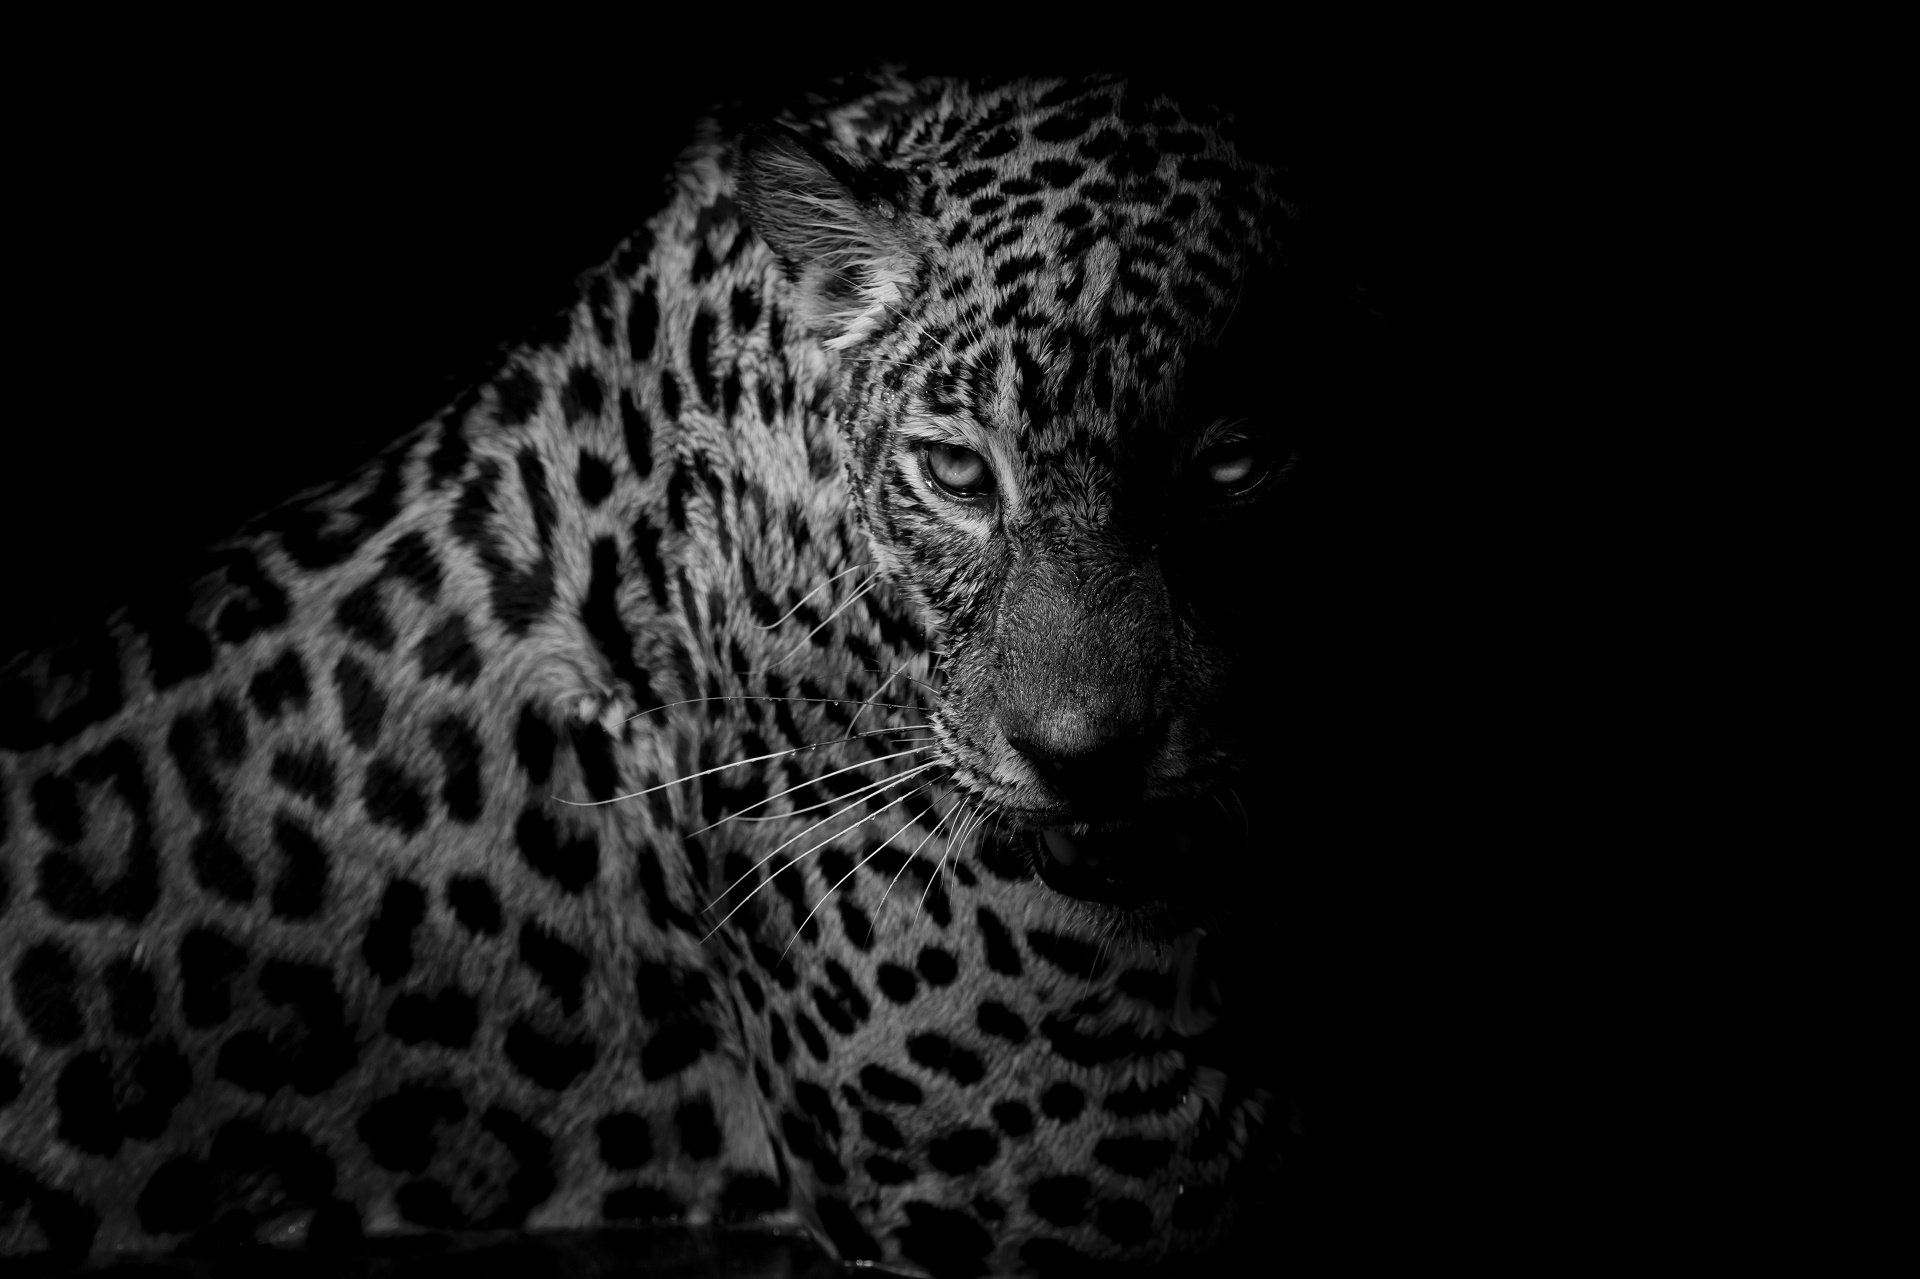 leopard full hd wallpaper and background image | 1920x1279 | id:672380